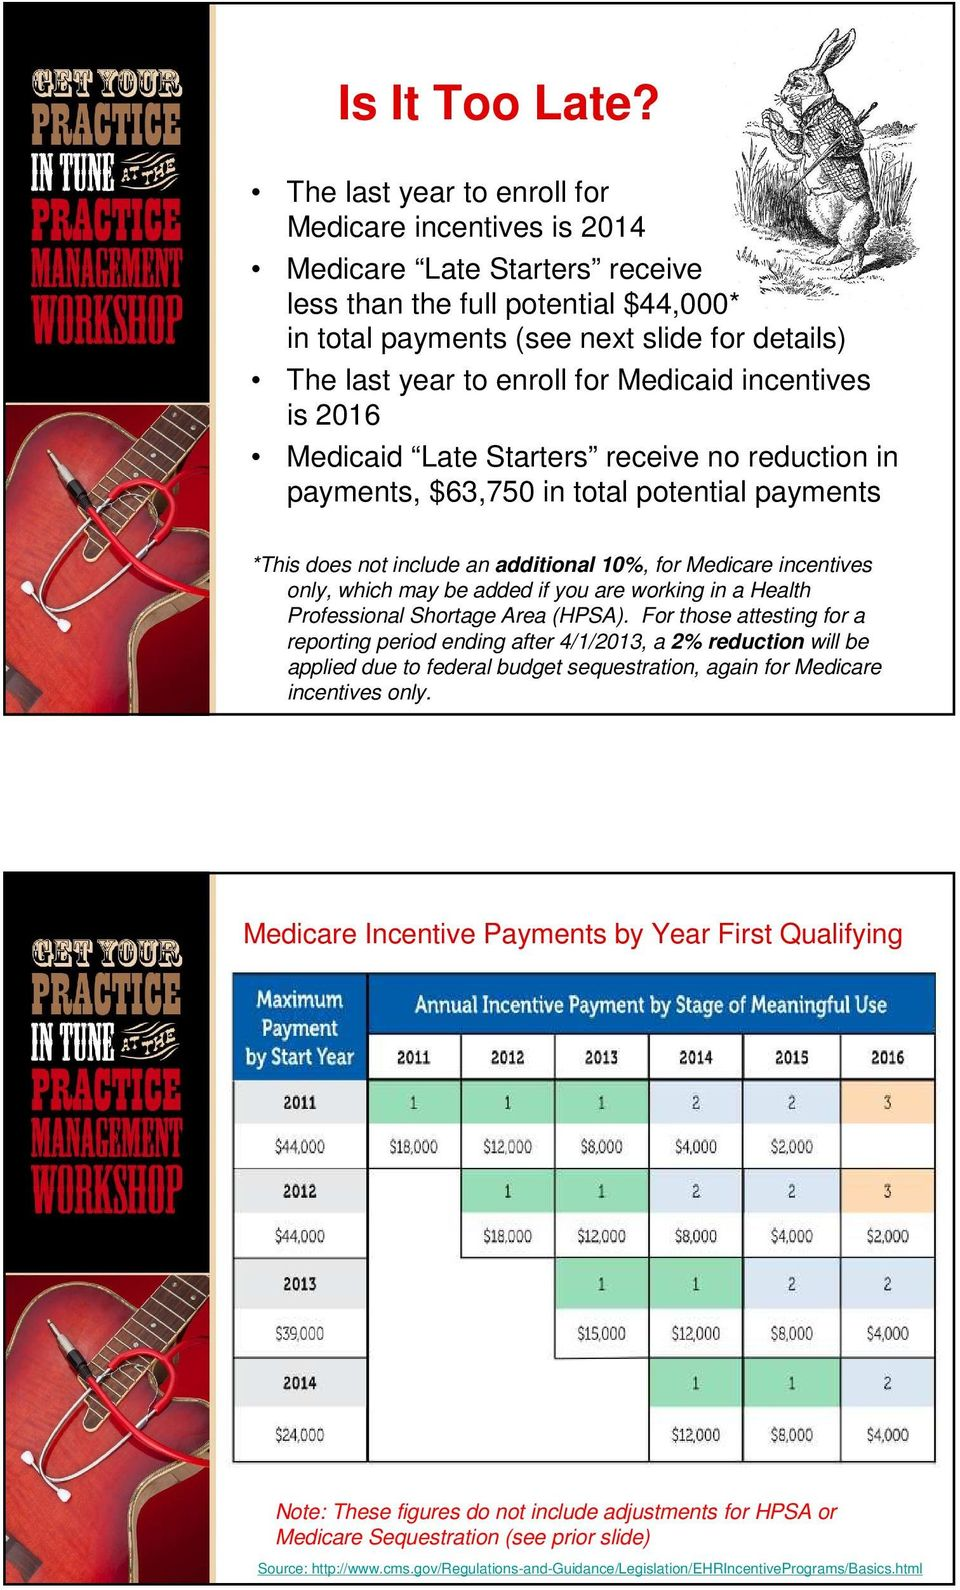 Medicaid incentives is 2016 Medicaid Late Starters receive no reduction in payments, $63,750 in total potential payments *This does not include an additional 10%, for Medicare incentives only, which